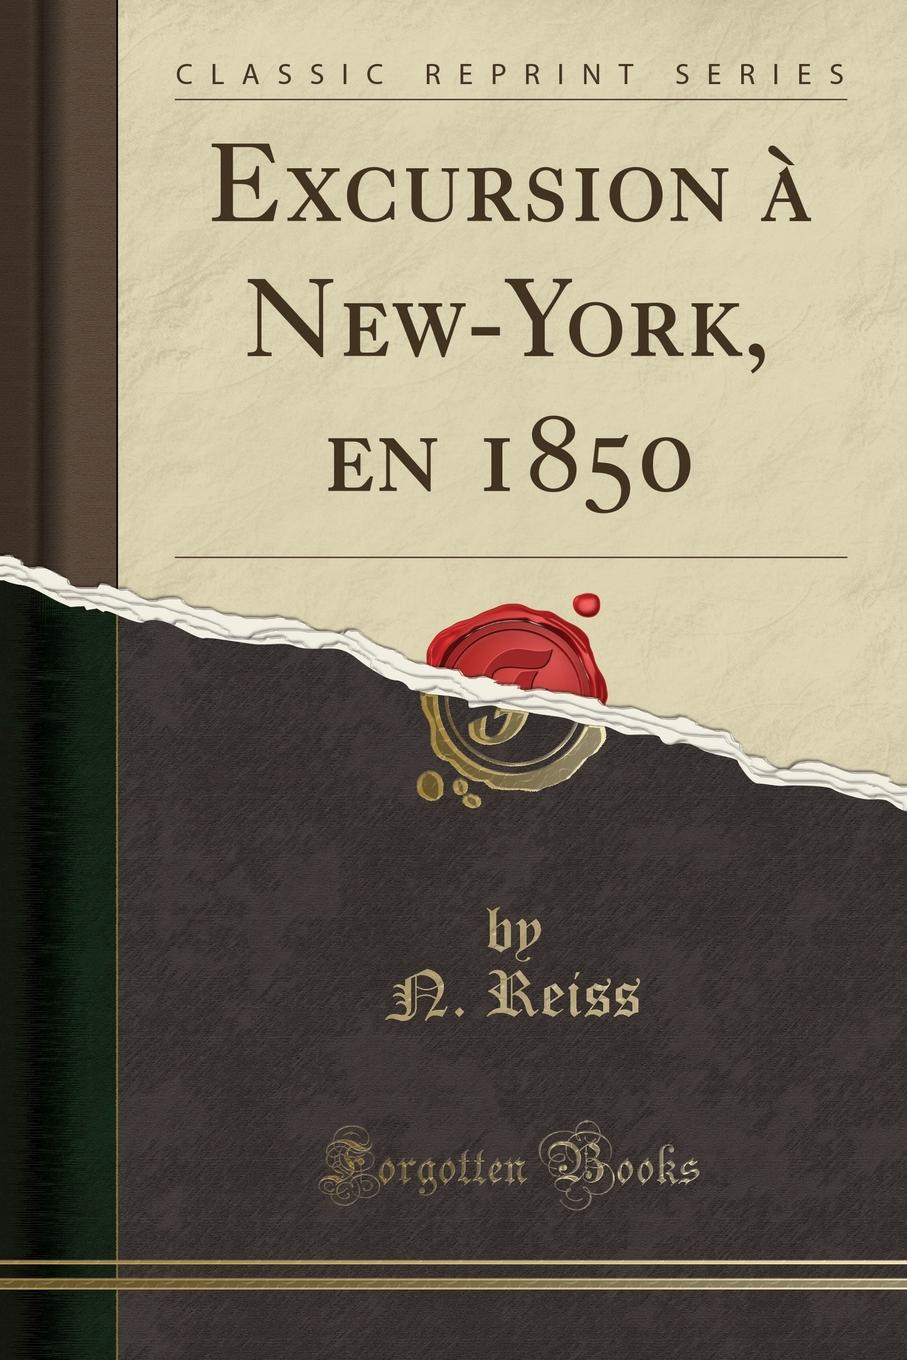 N. Reiss Excursion a New-York, en 1850 (Classic Reprint)